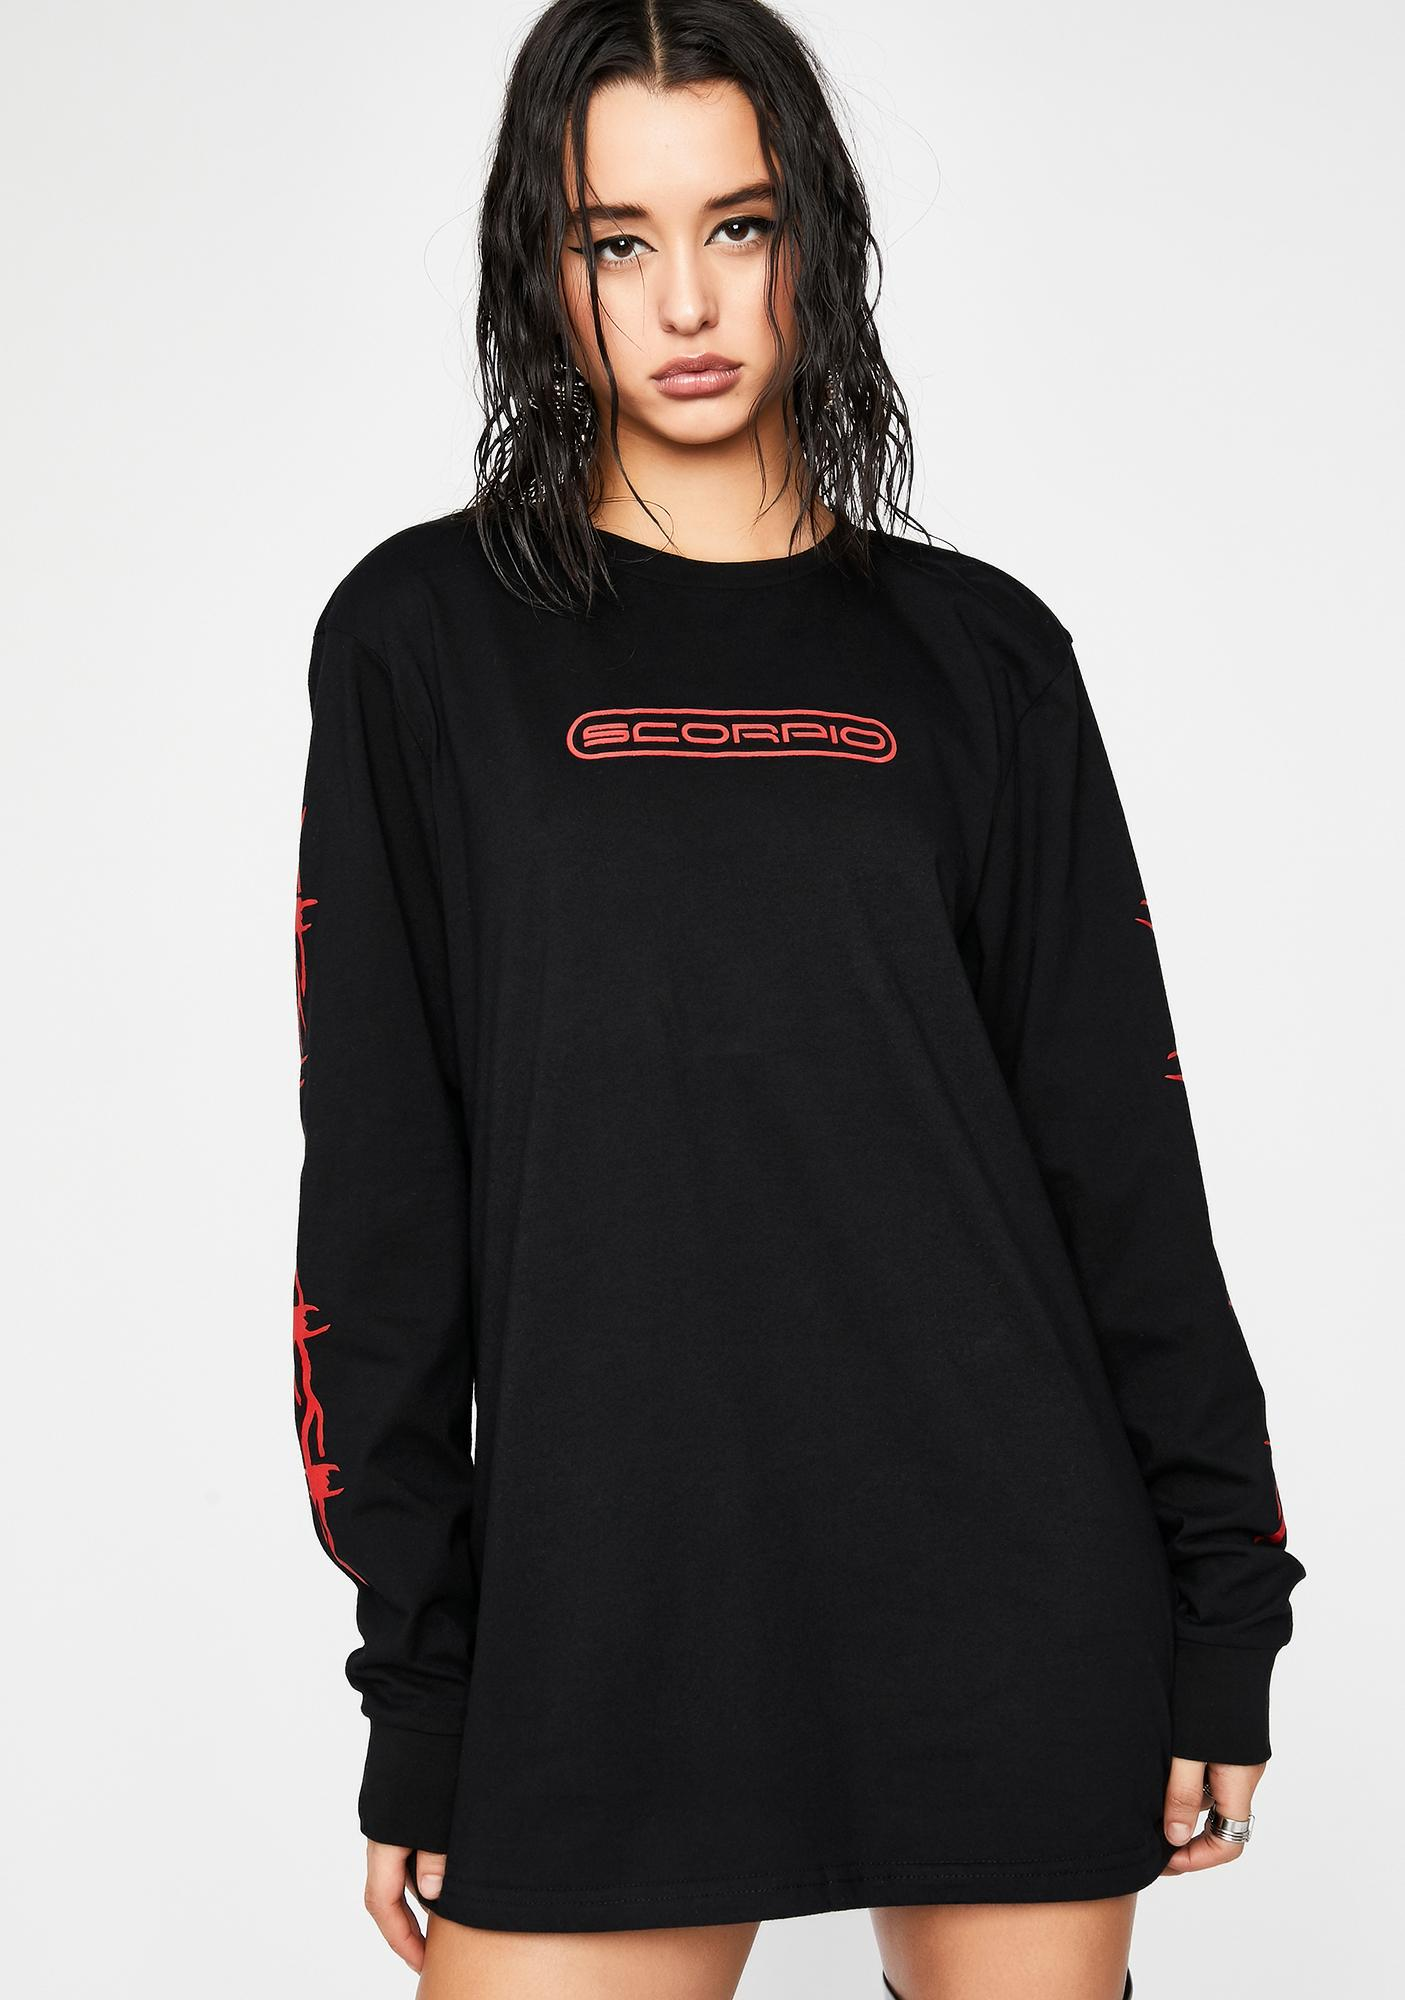 HOROSCOPEZ Boiling Blood Graphic Tee